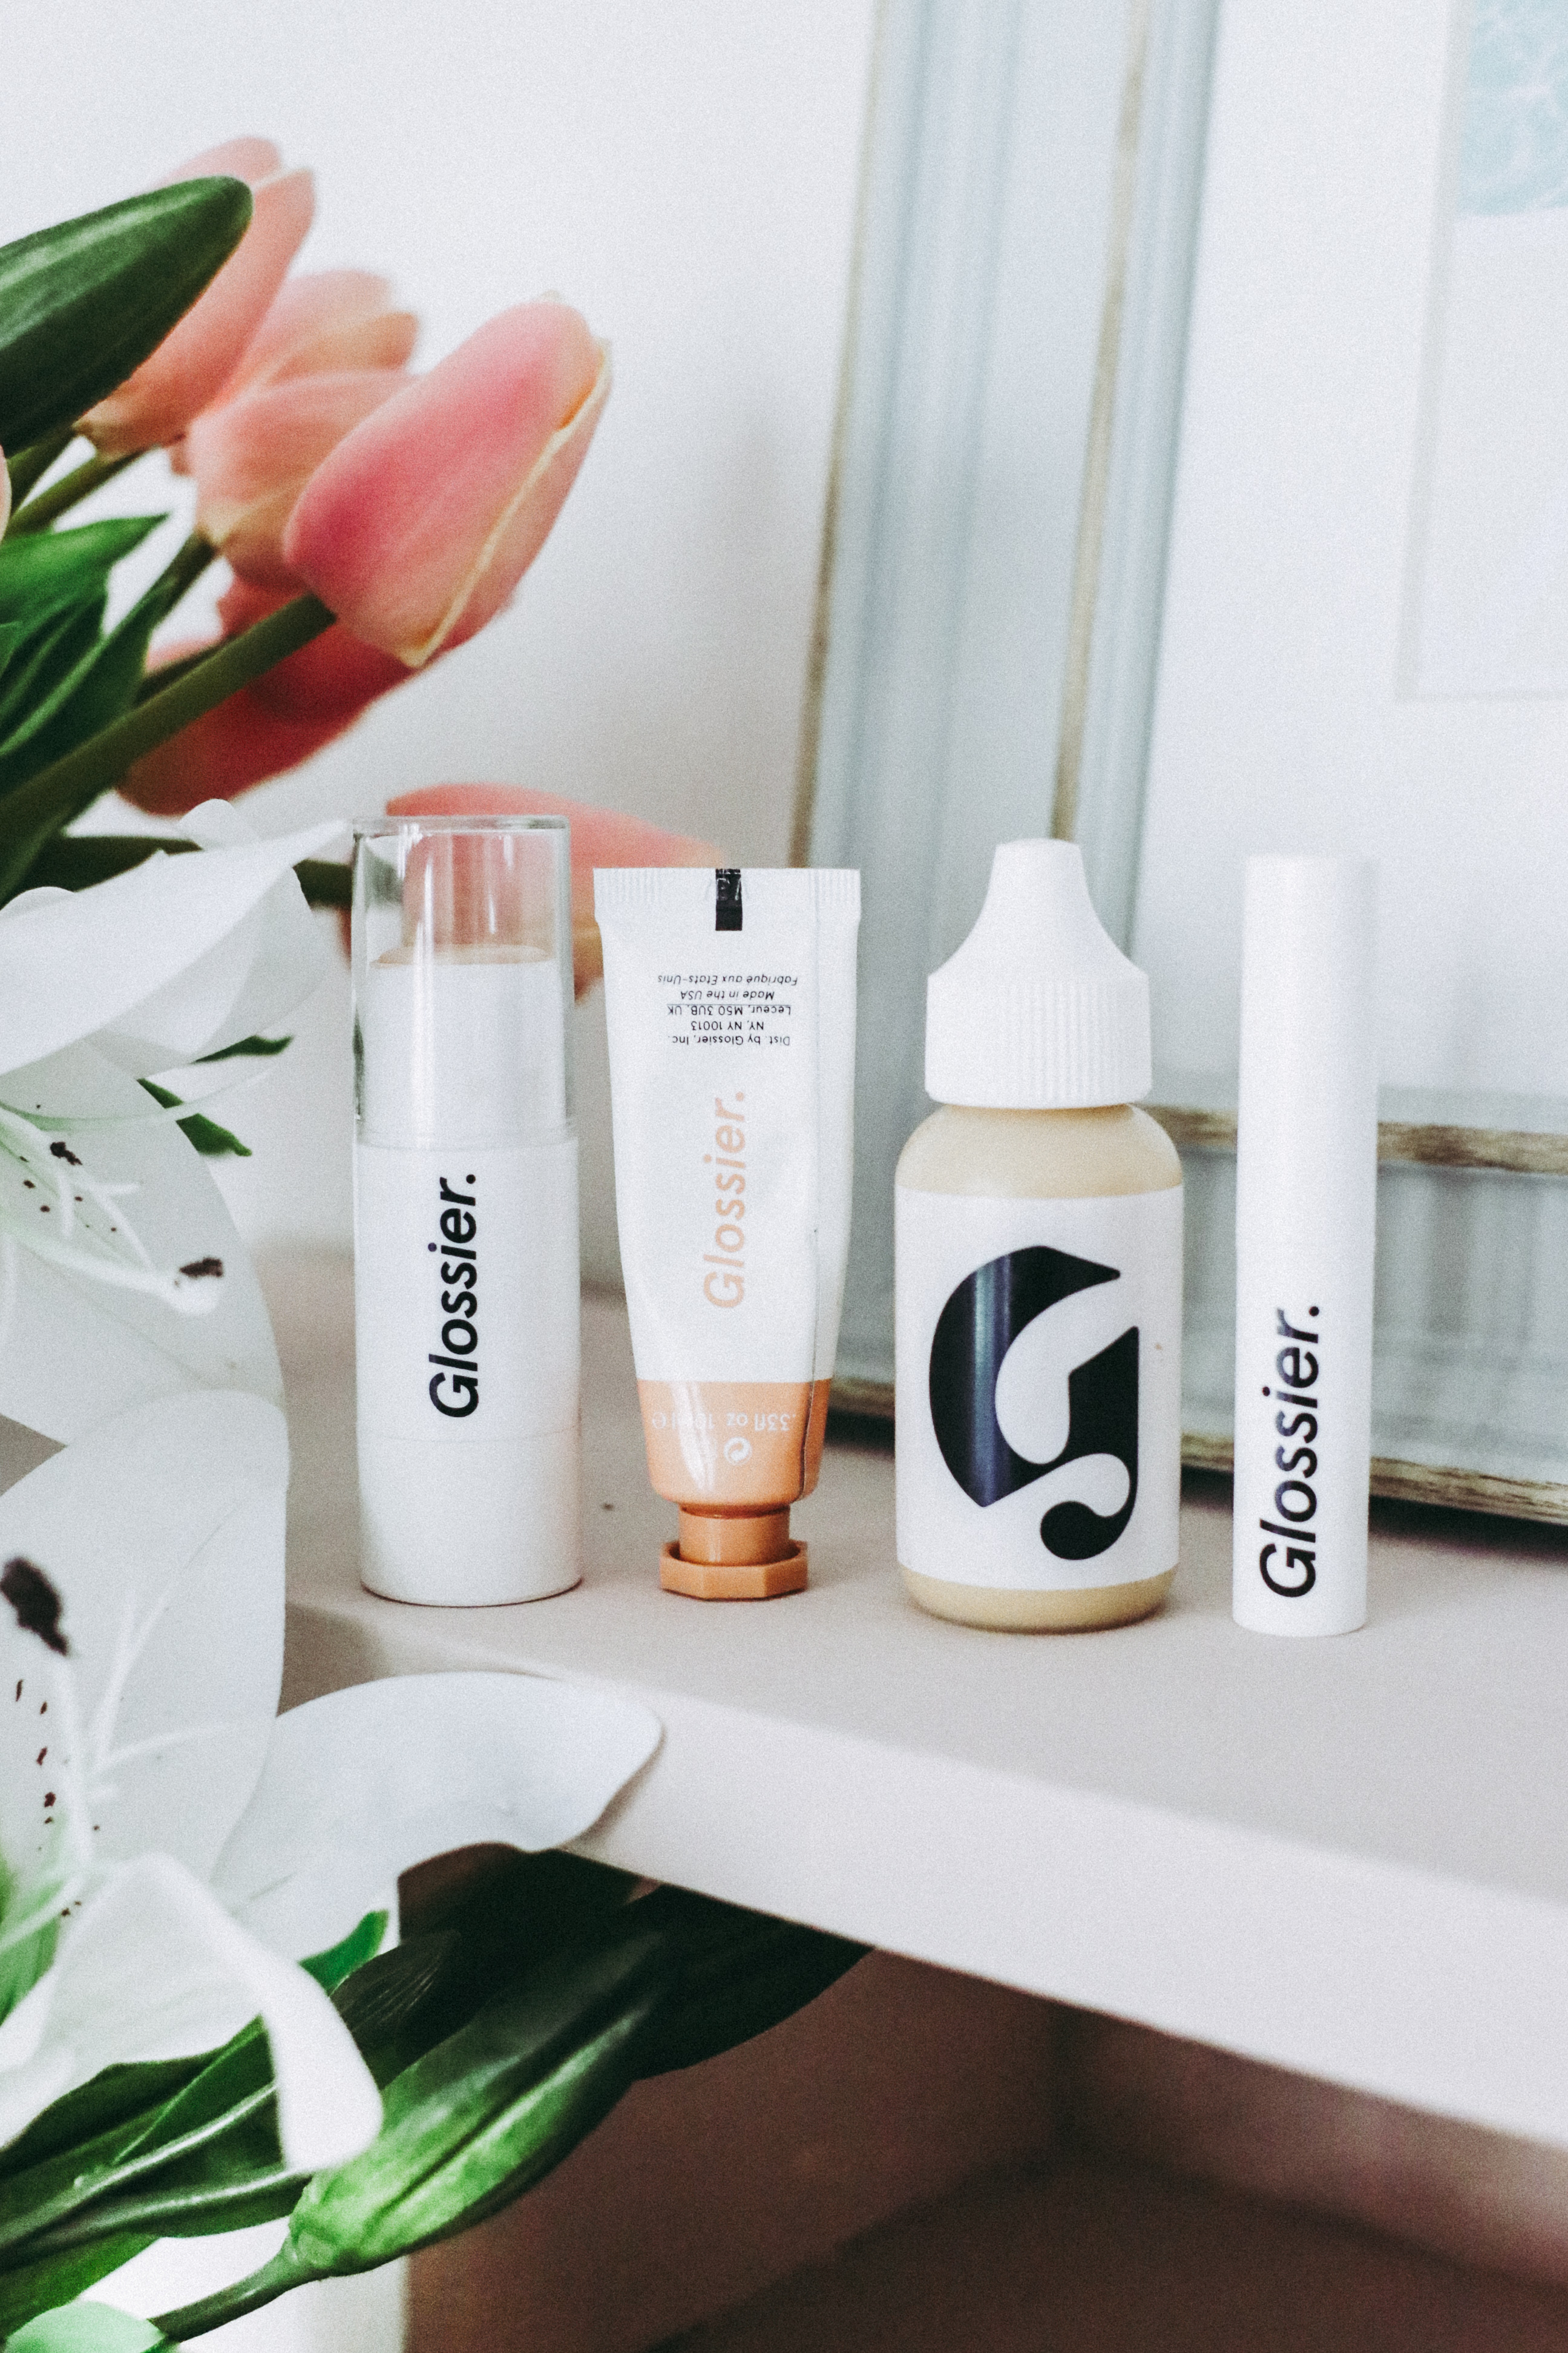 Glossier Makeup Review: Video